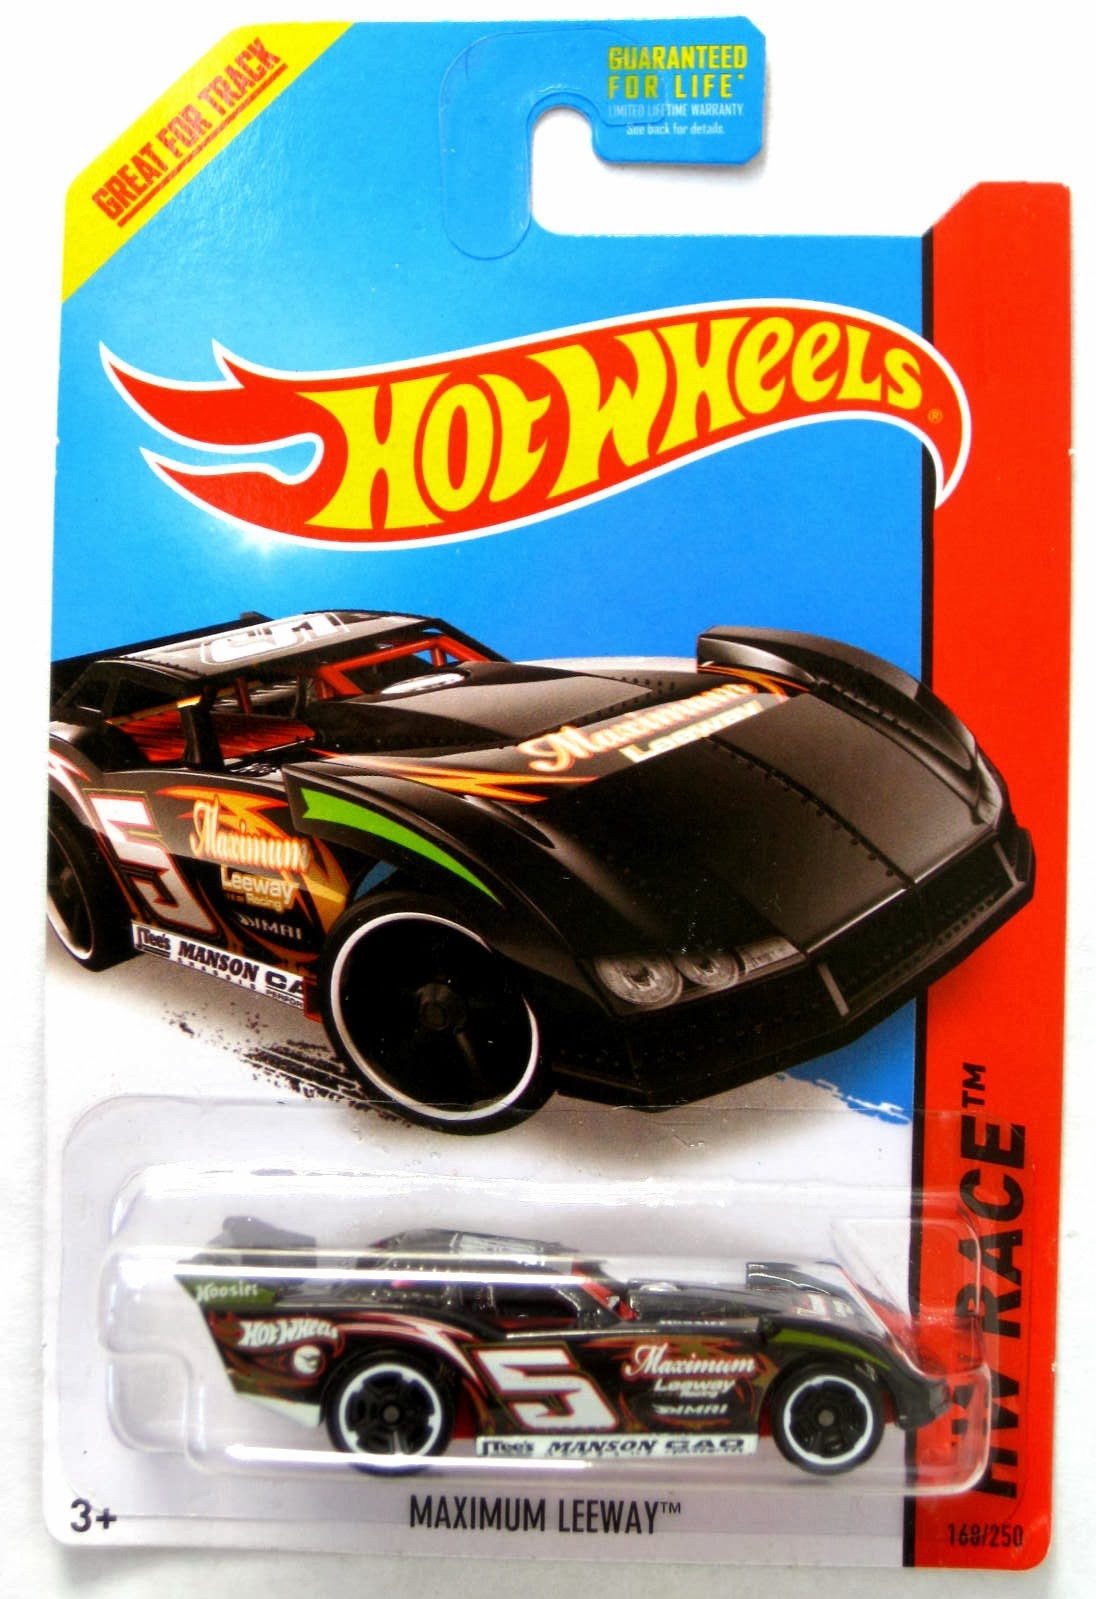 Hot Wheels 2014 2nd Super Treasure Hunt Sandblaster!!!! - YouTube